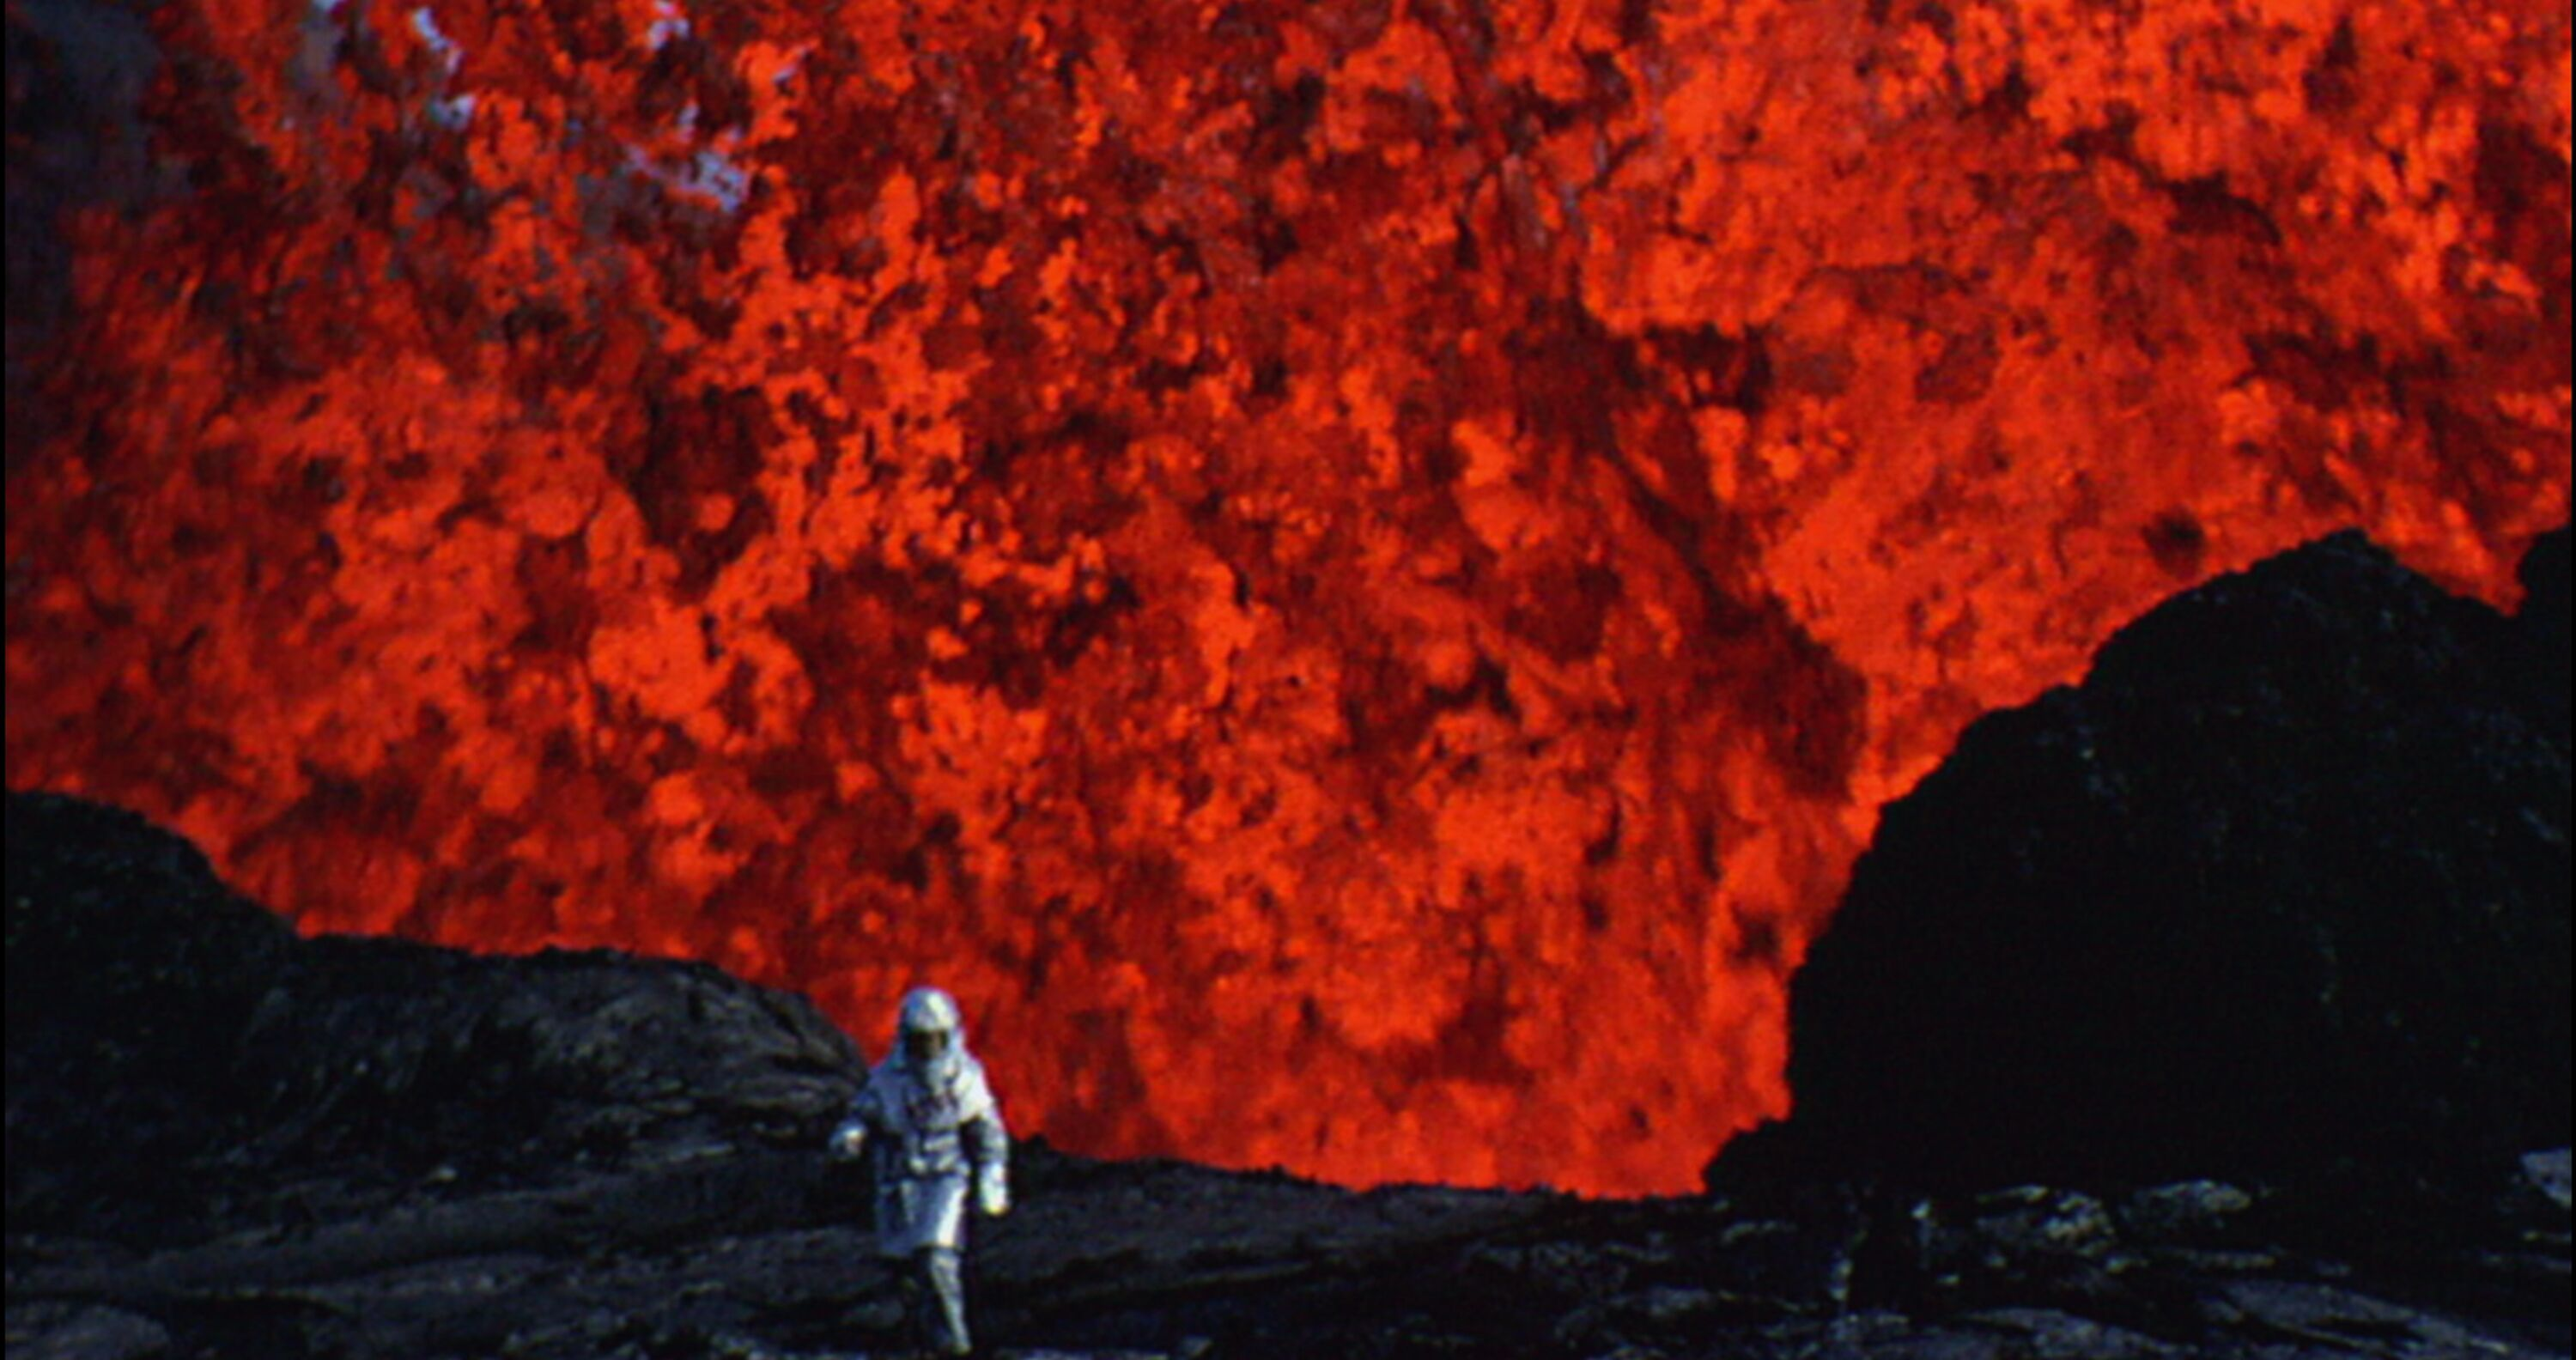 50 Best Documentaries on Netflix: Into the Inferno joins the ranking